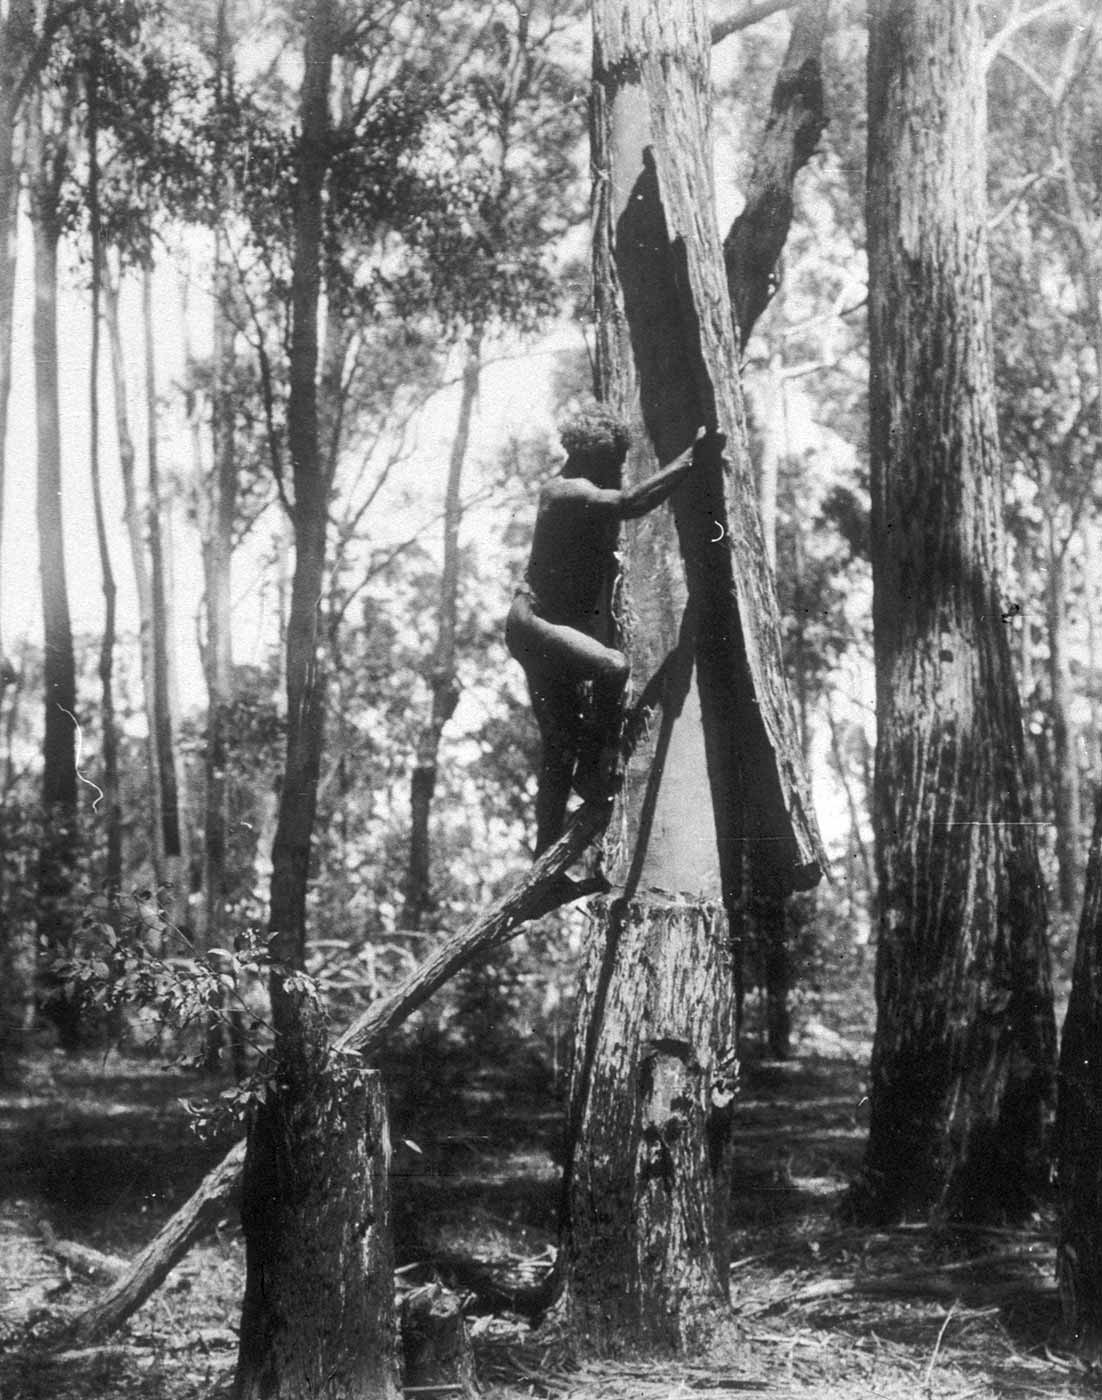 Black and white photograph of a man scaling a tree in bushland. - click to view larger image